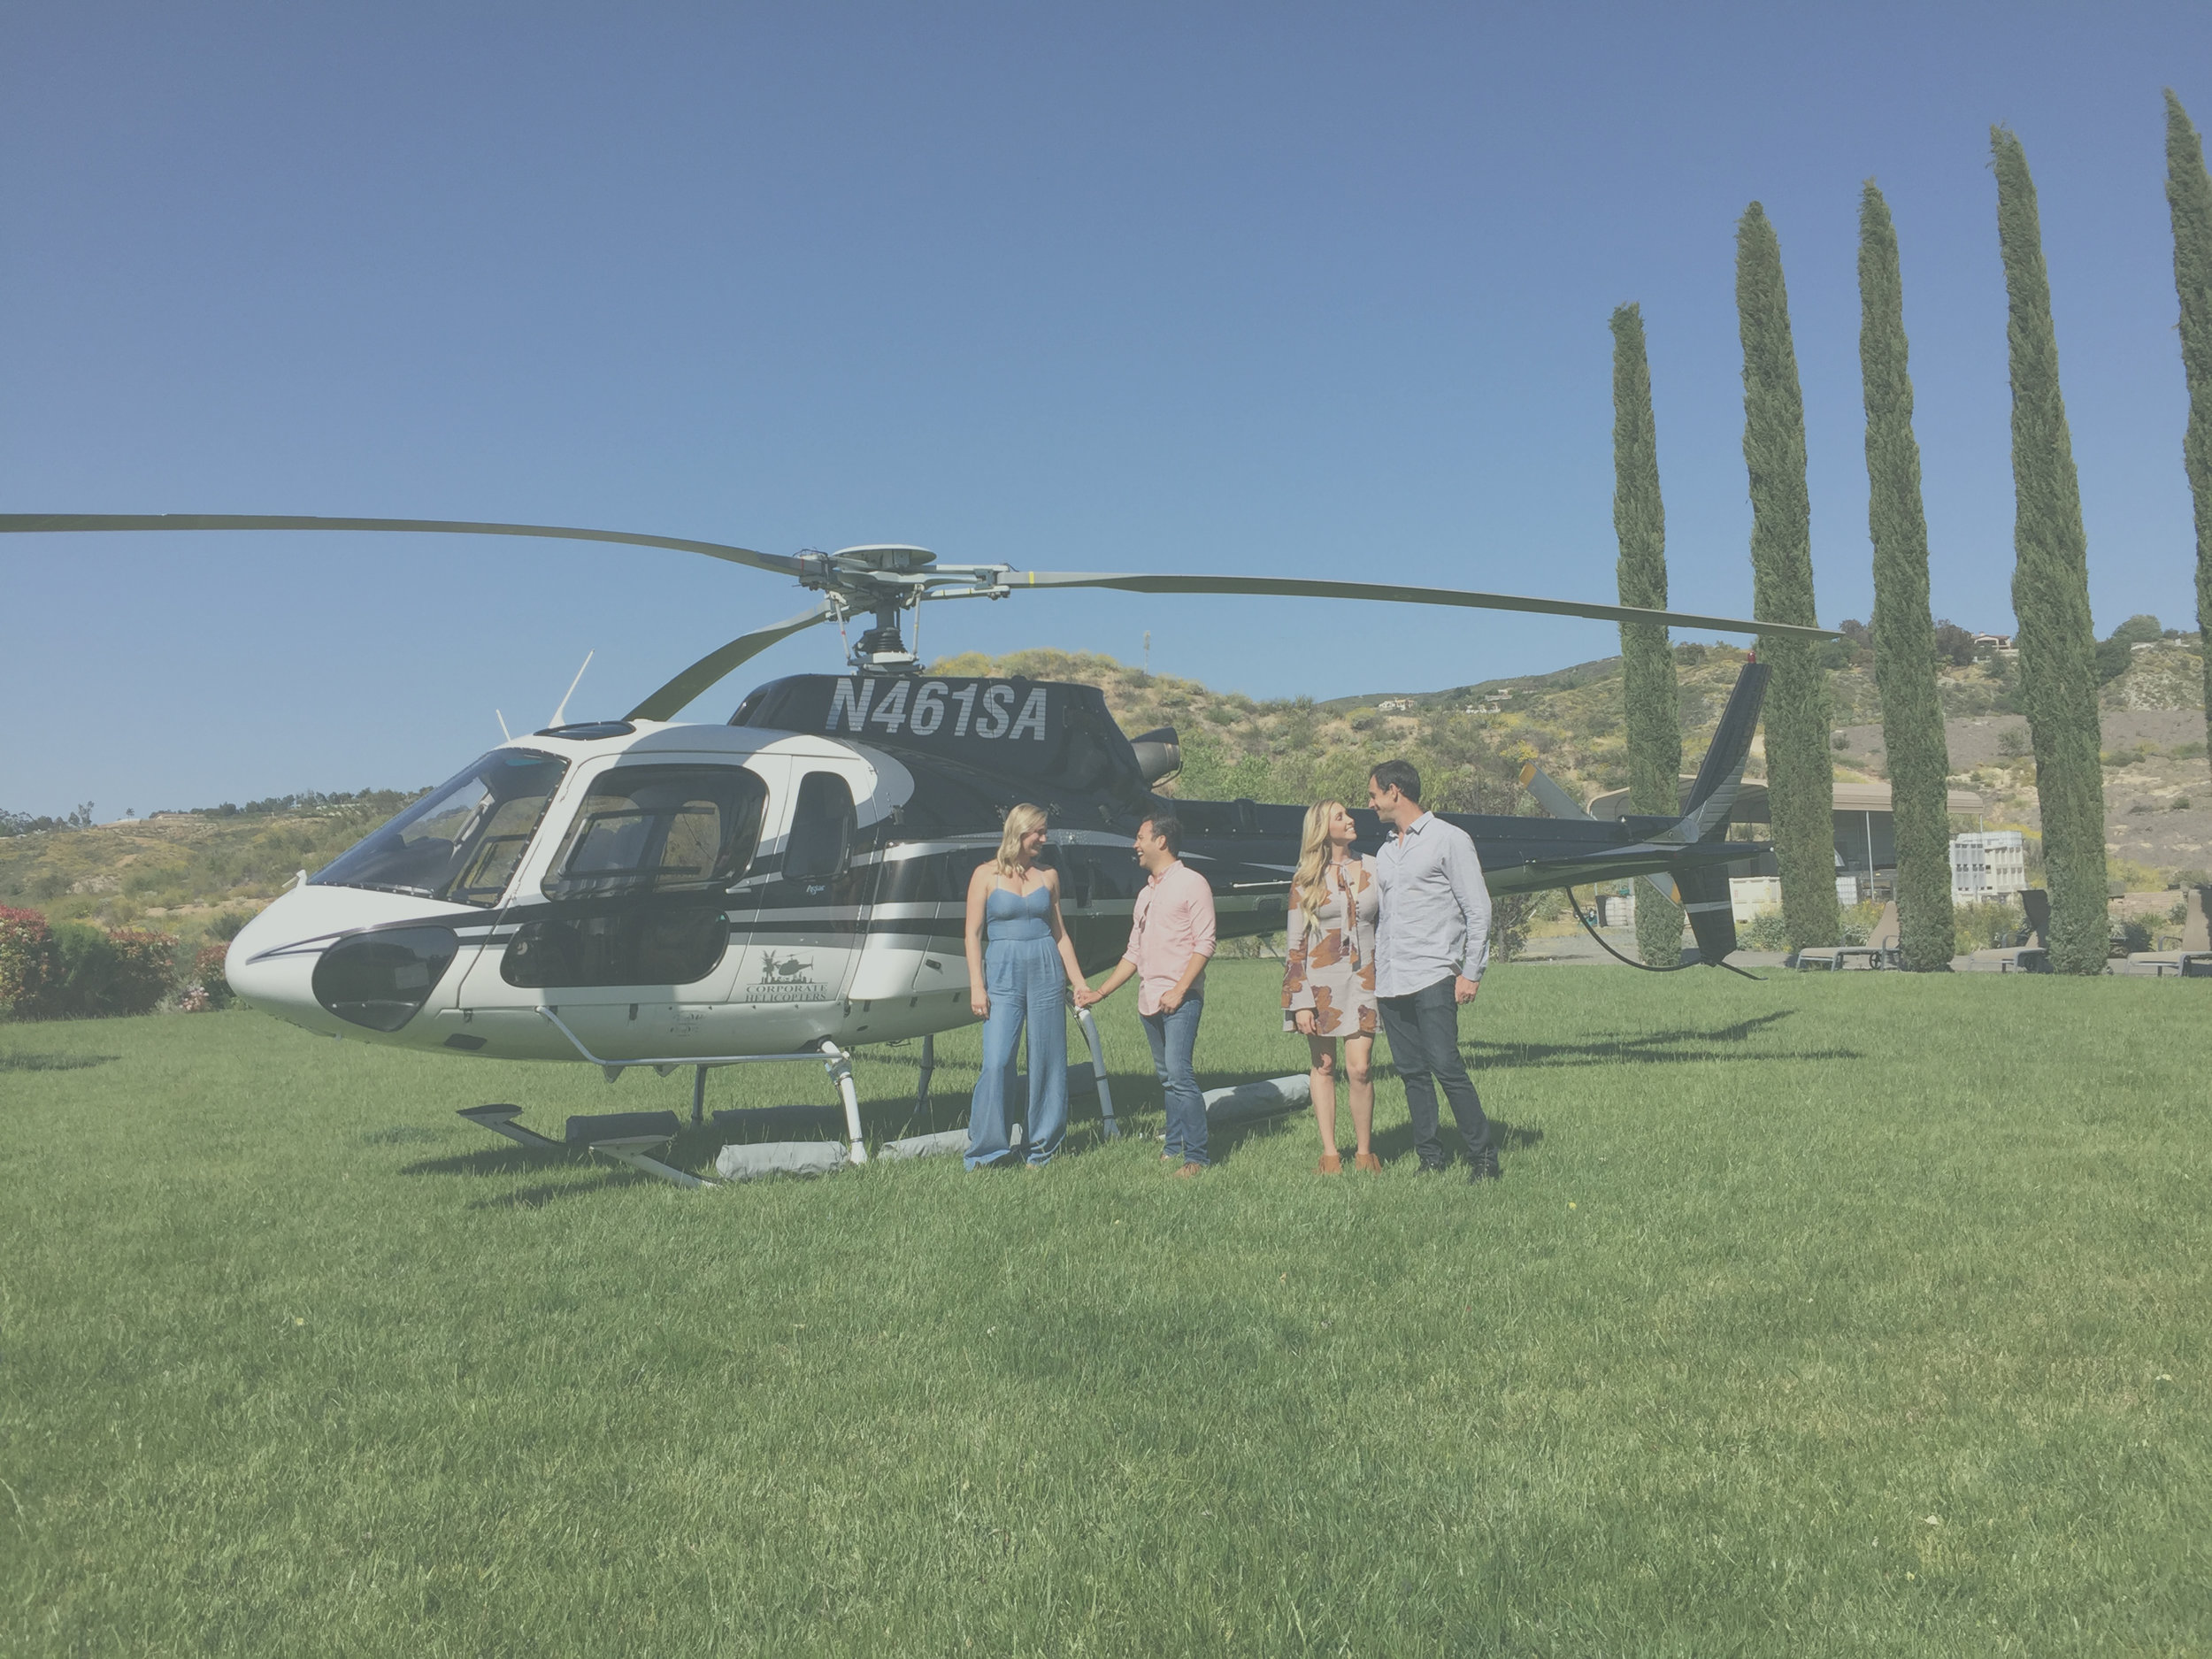 live like a local - February is the month for love & romance, so why not spice it up a bit! Local company, Corporate Helicoptersis doing ocean view tours for discounted rates, and don't miss out on their fancy wine tours to Temecula. #loveisintheair